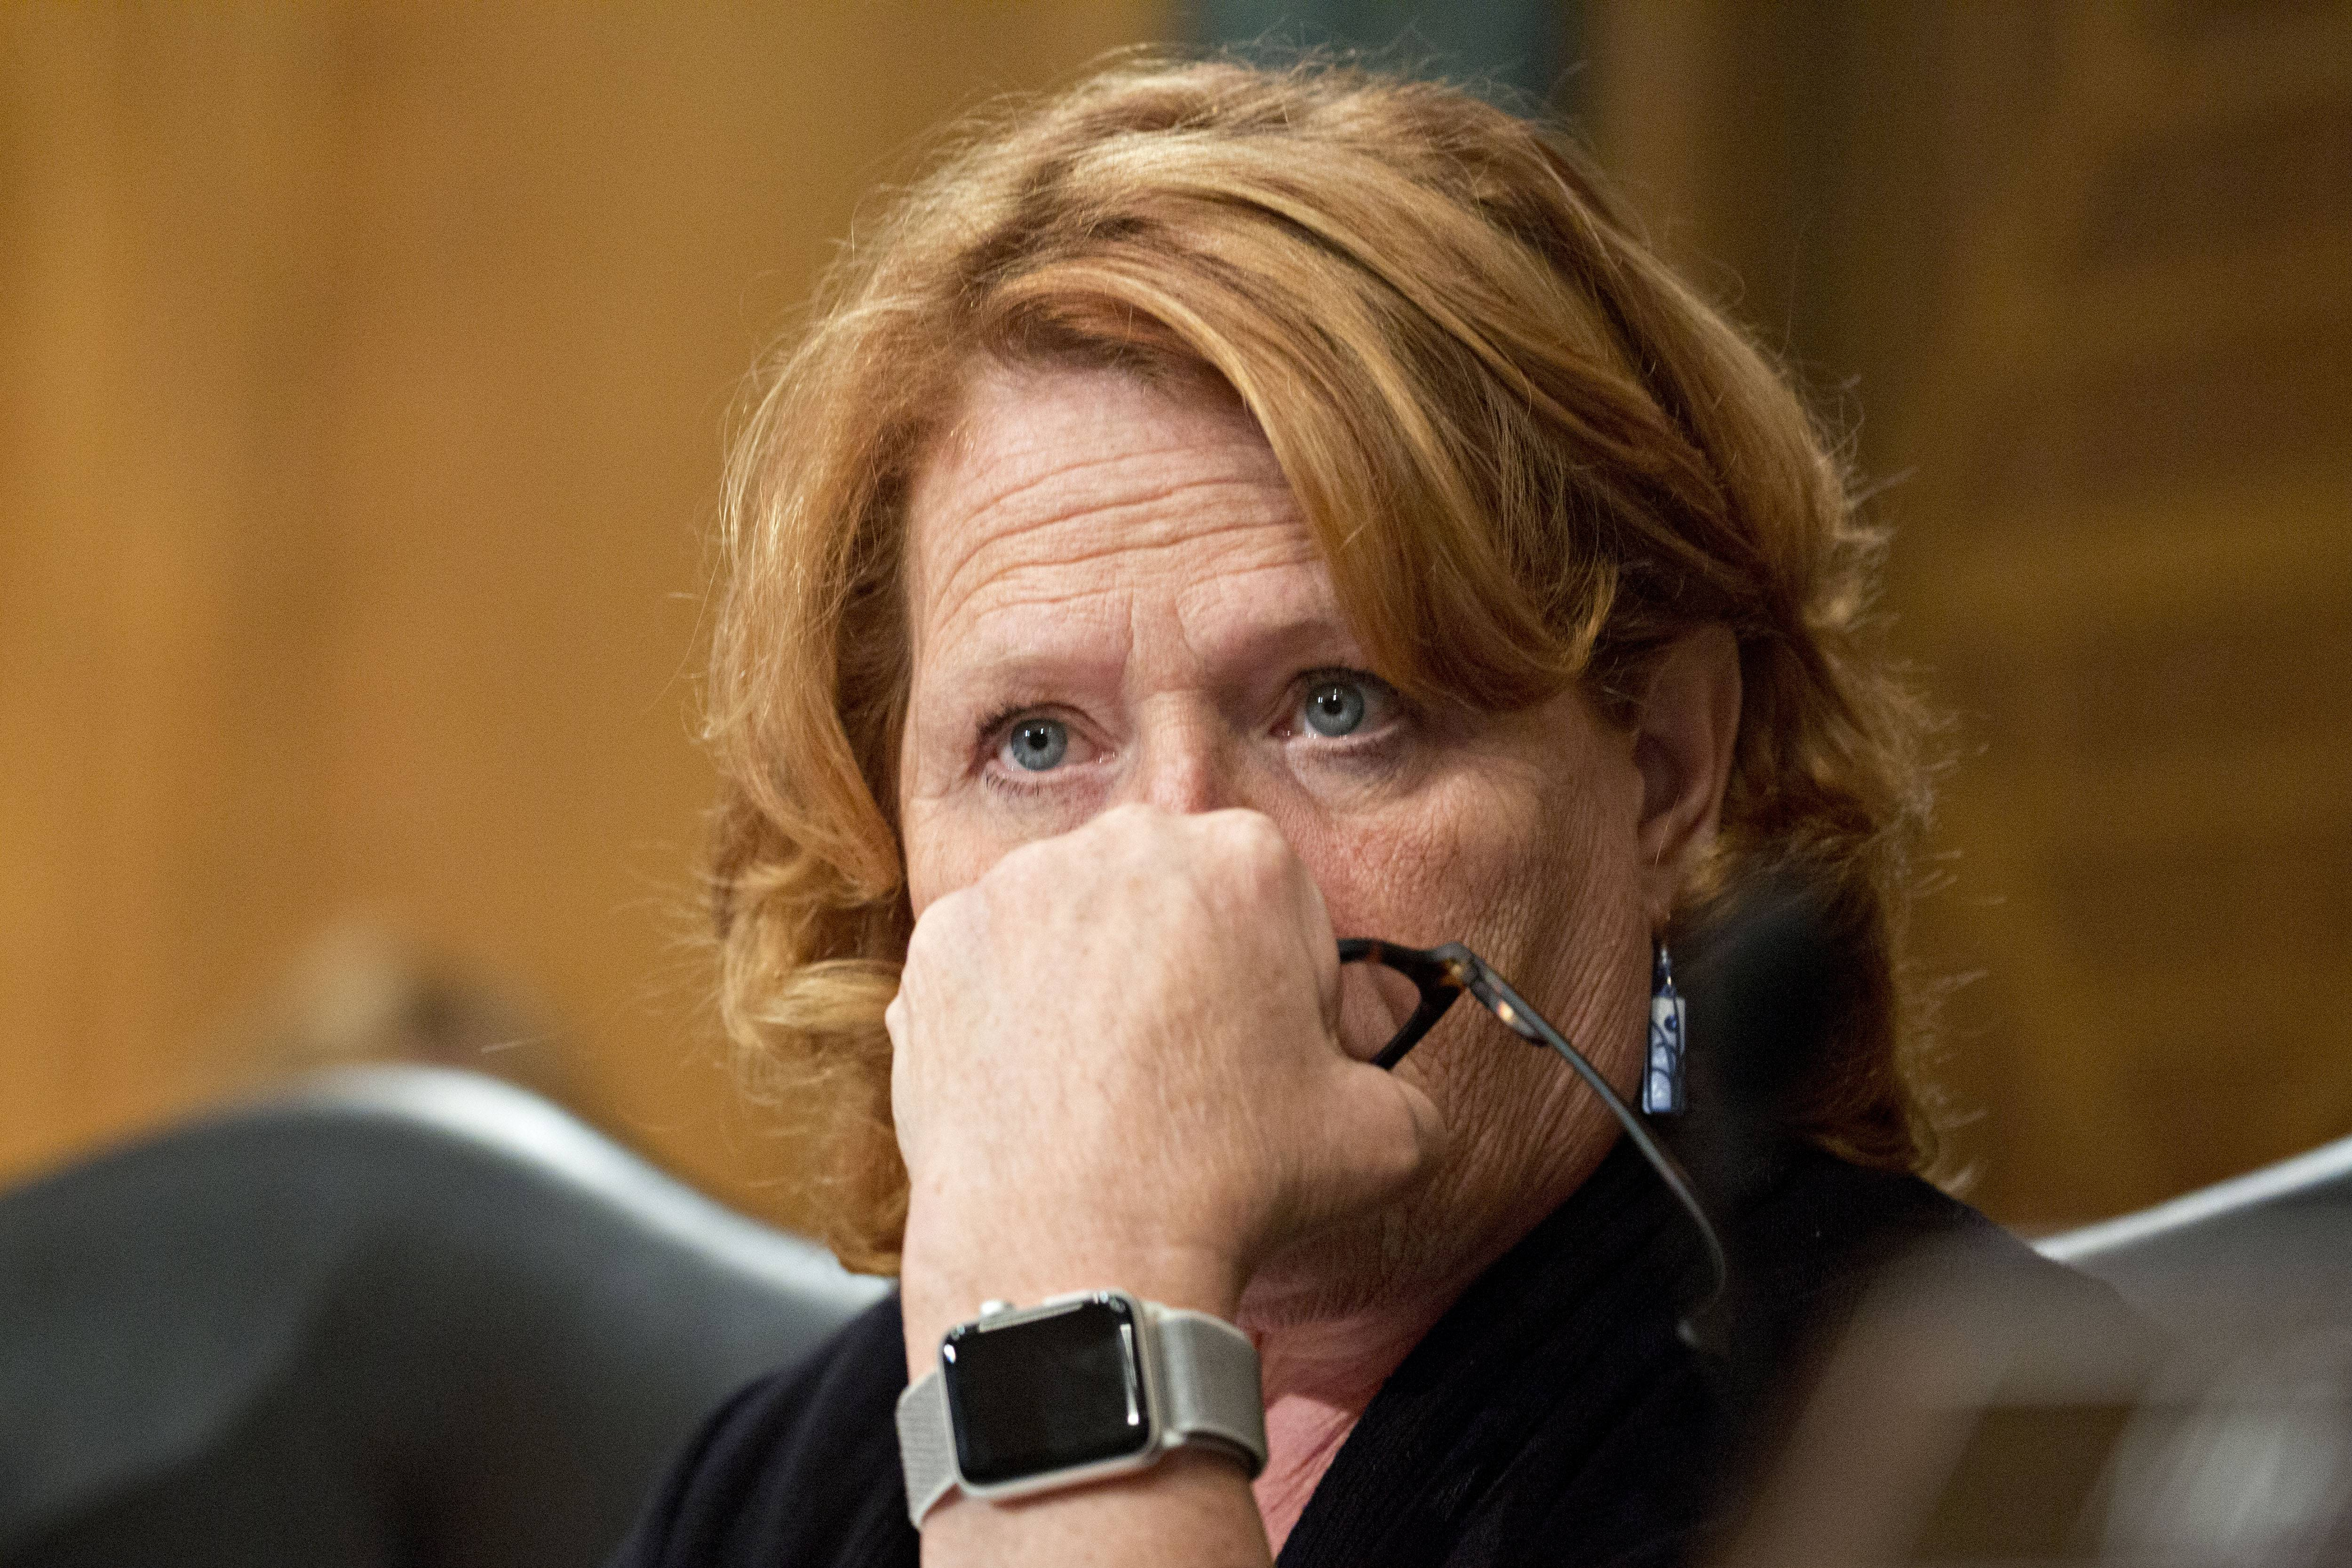 Heitkamp says unauthorized list of abuse victims' names could be from 'Facebook feed'